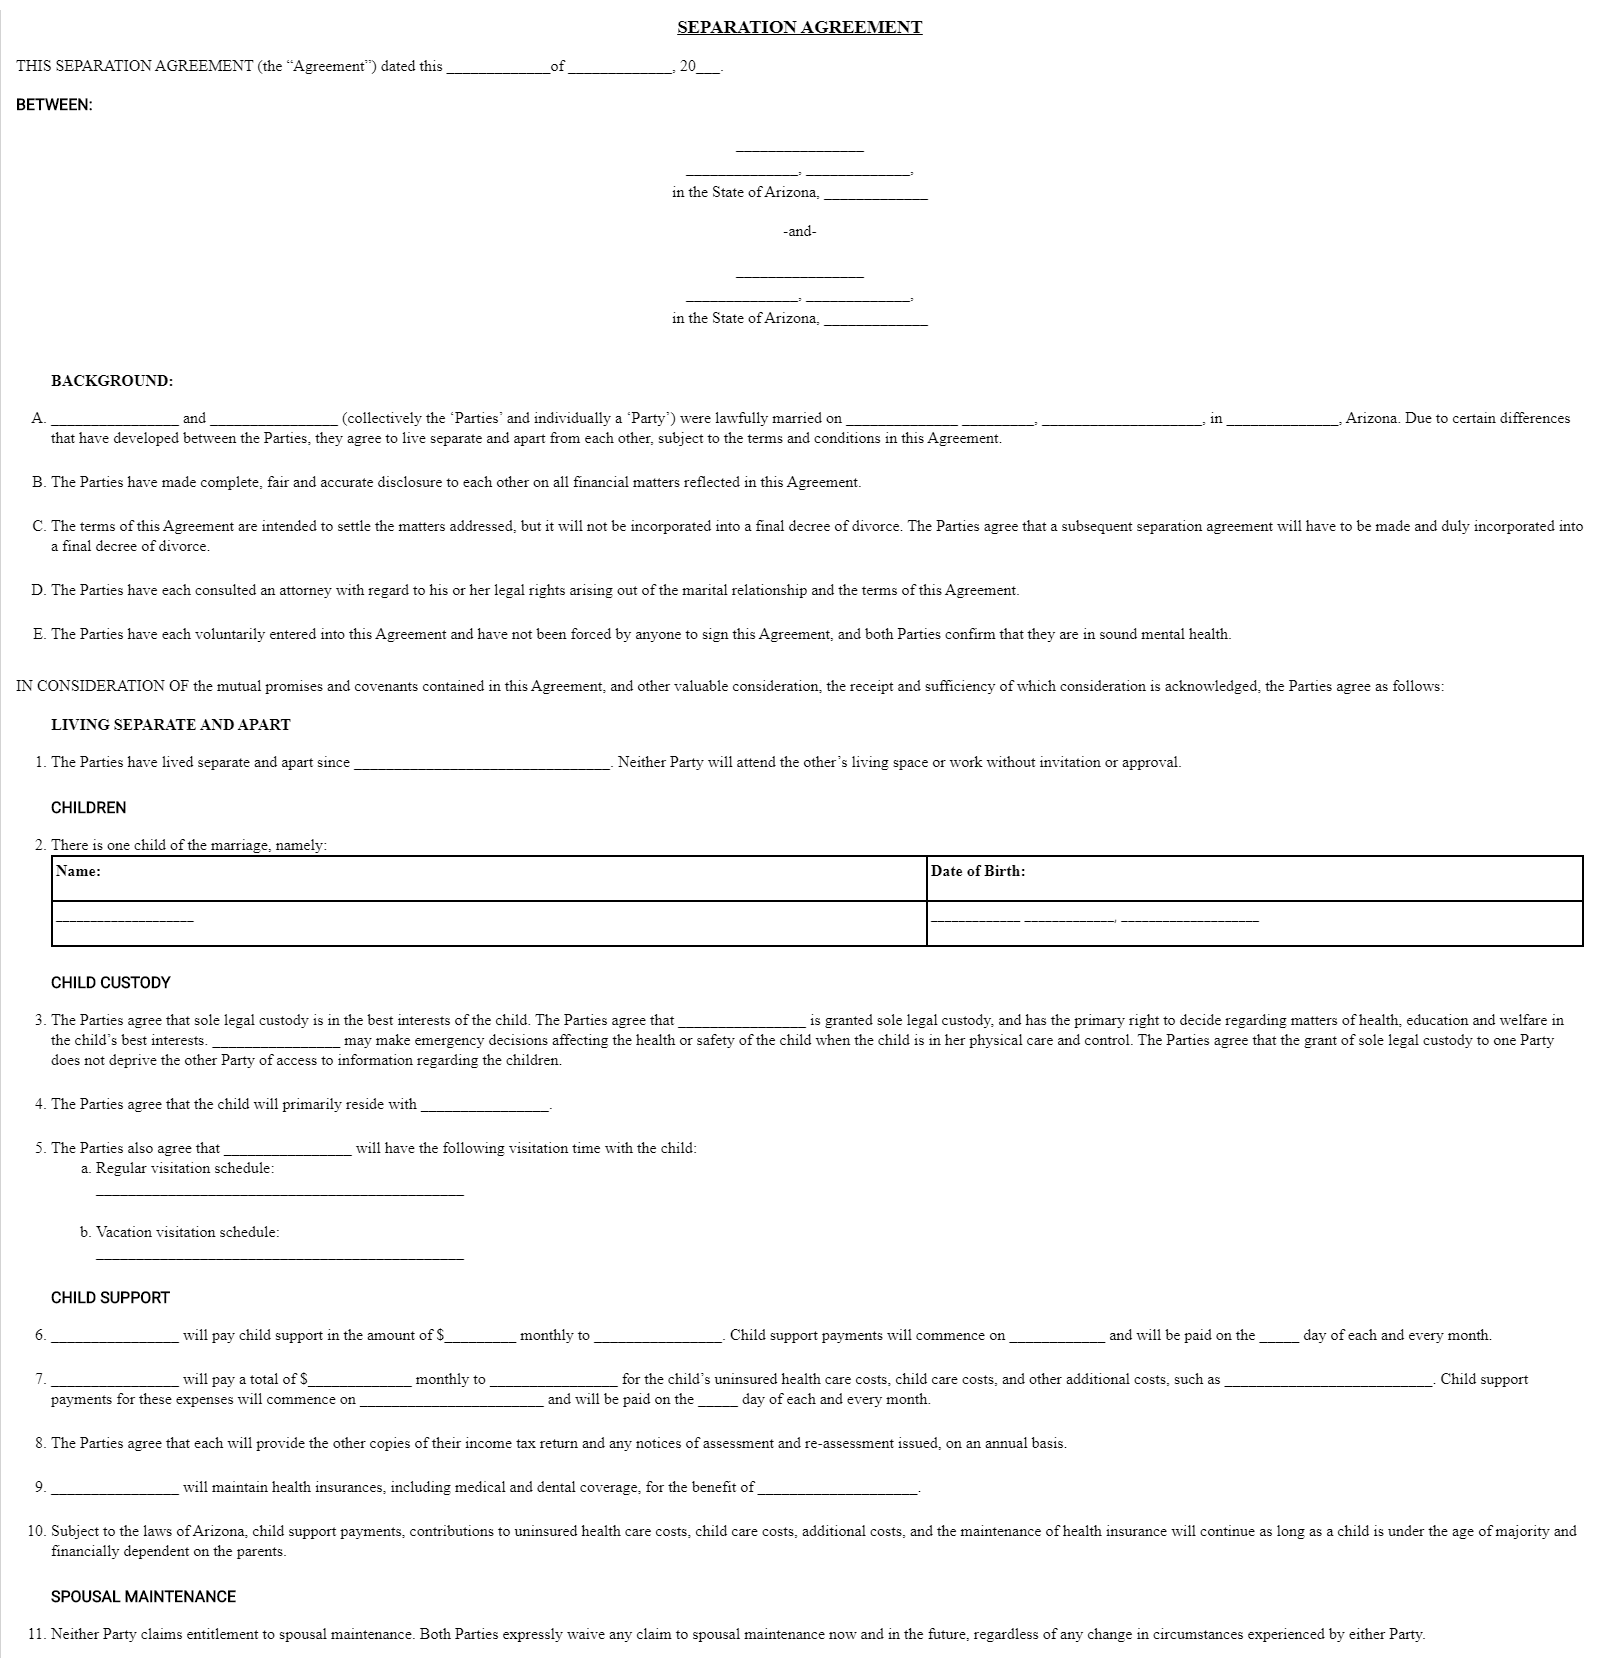 Legal Separation Agreement Template from mk0formslegals51qihq.kinstacdn.com